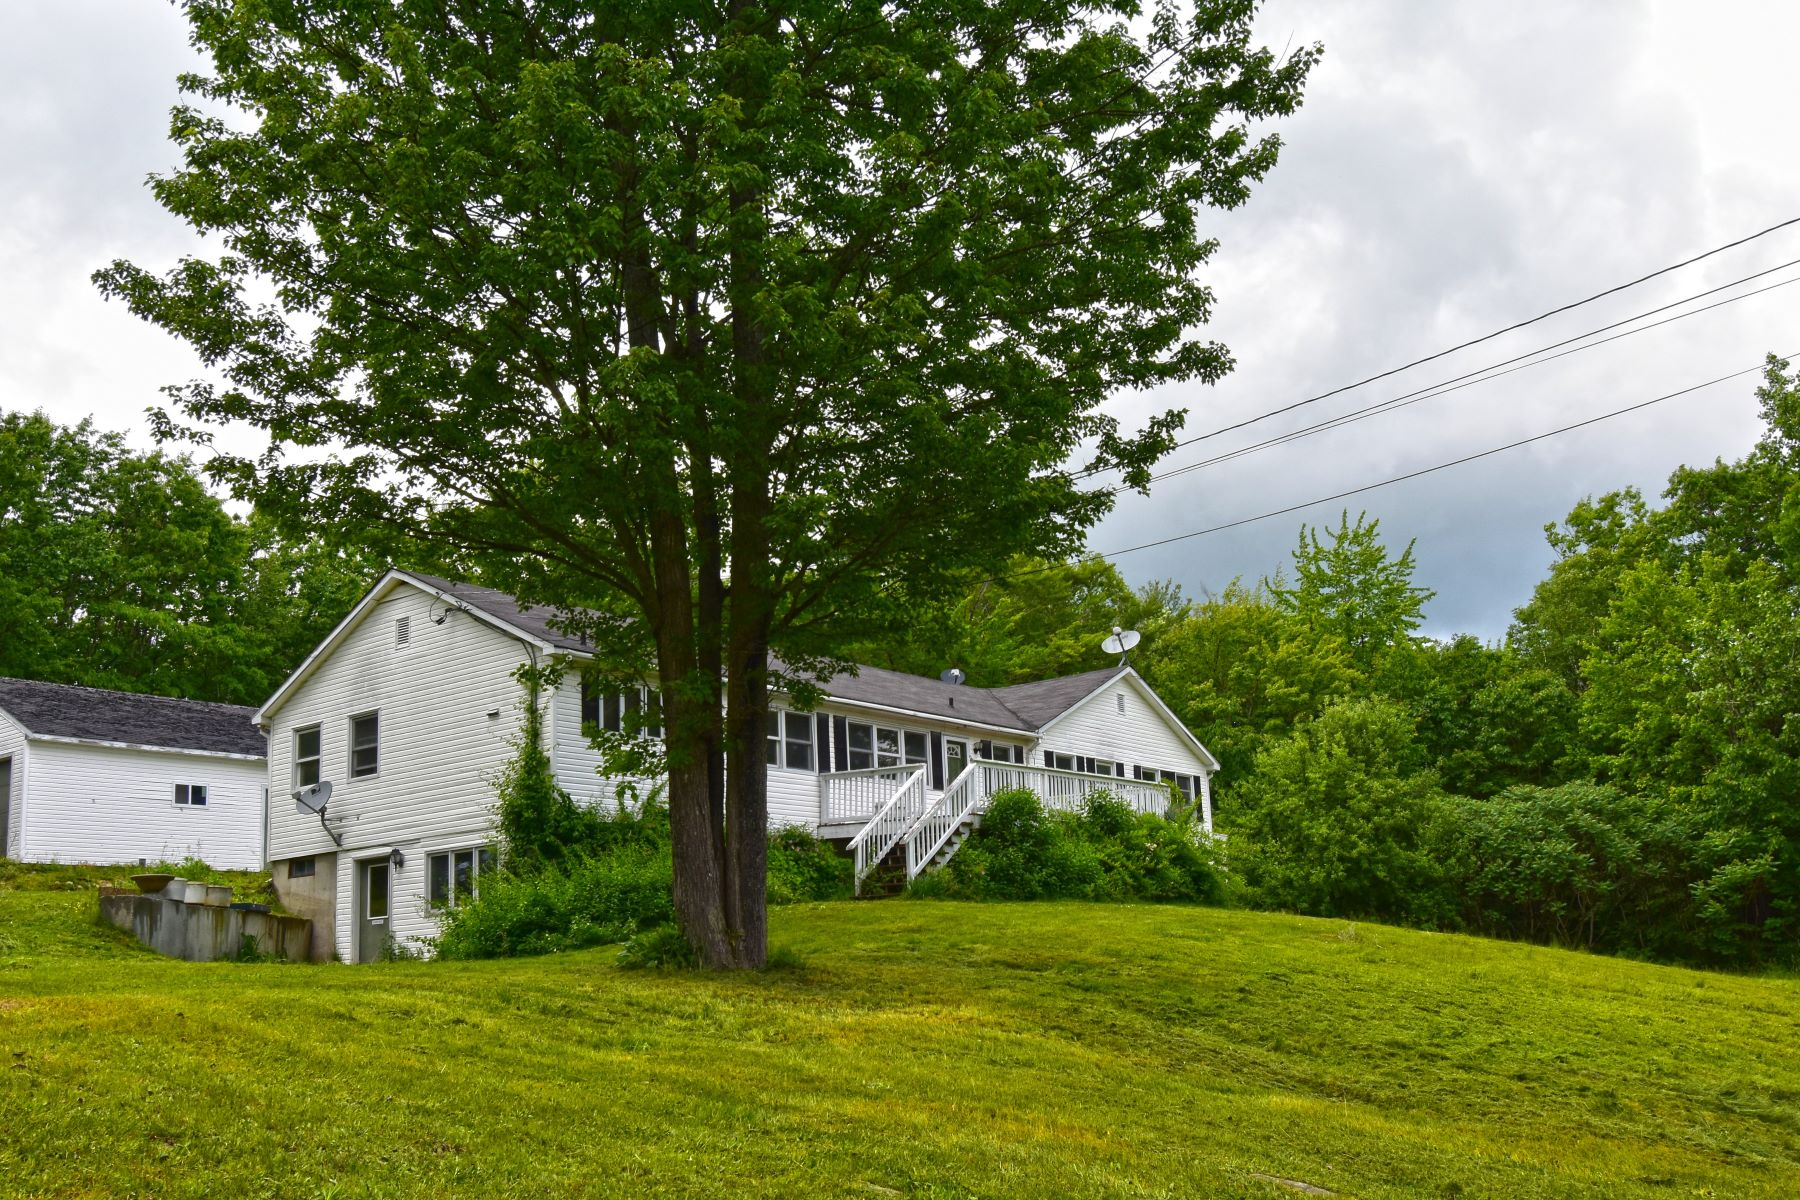 Single Family Homes for Active at Four Bedroom Ranch on 11 Acres in Claremont 352 Old Newport Rd Claremont, New Hampshire 03743 United States